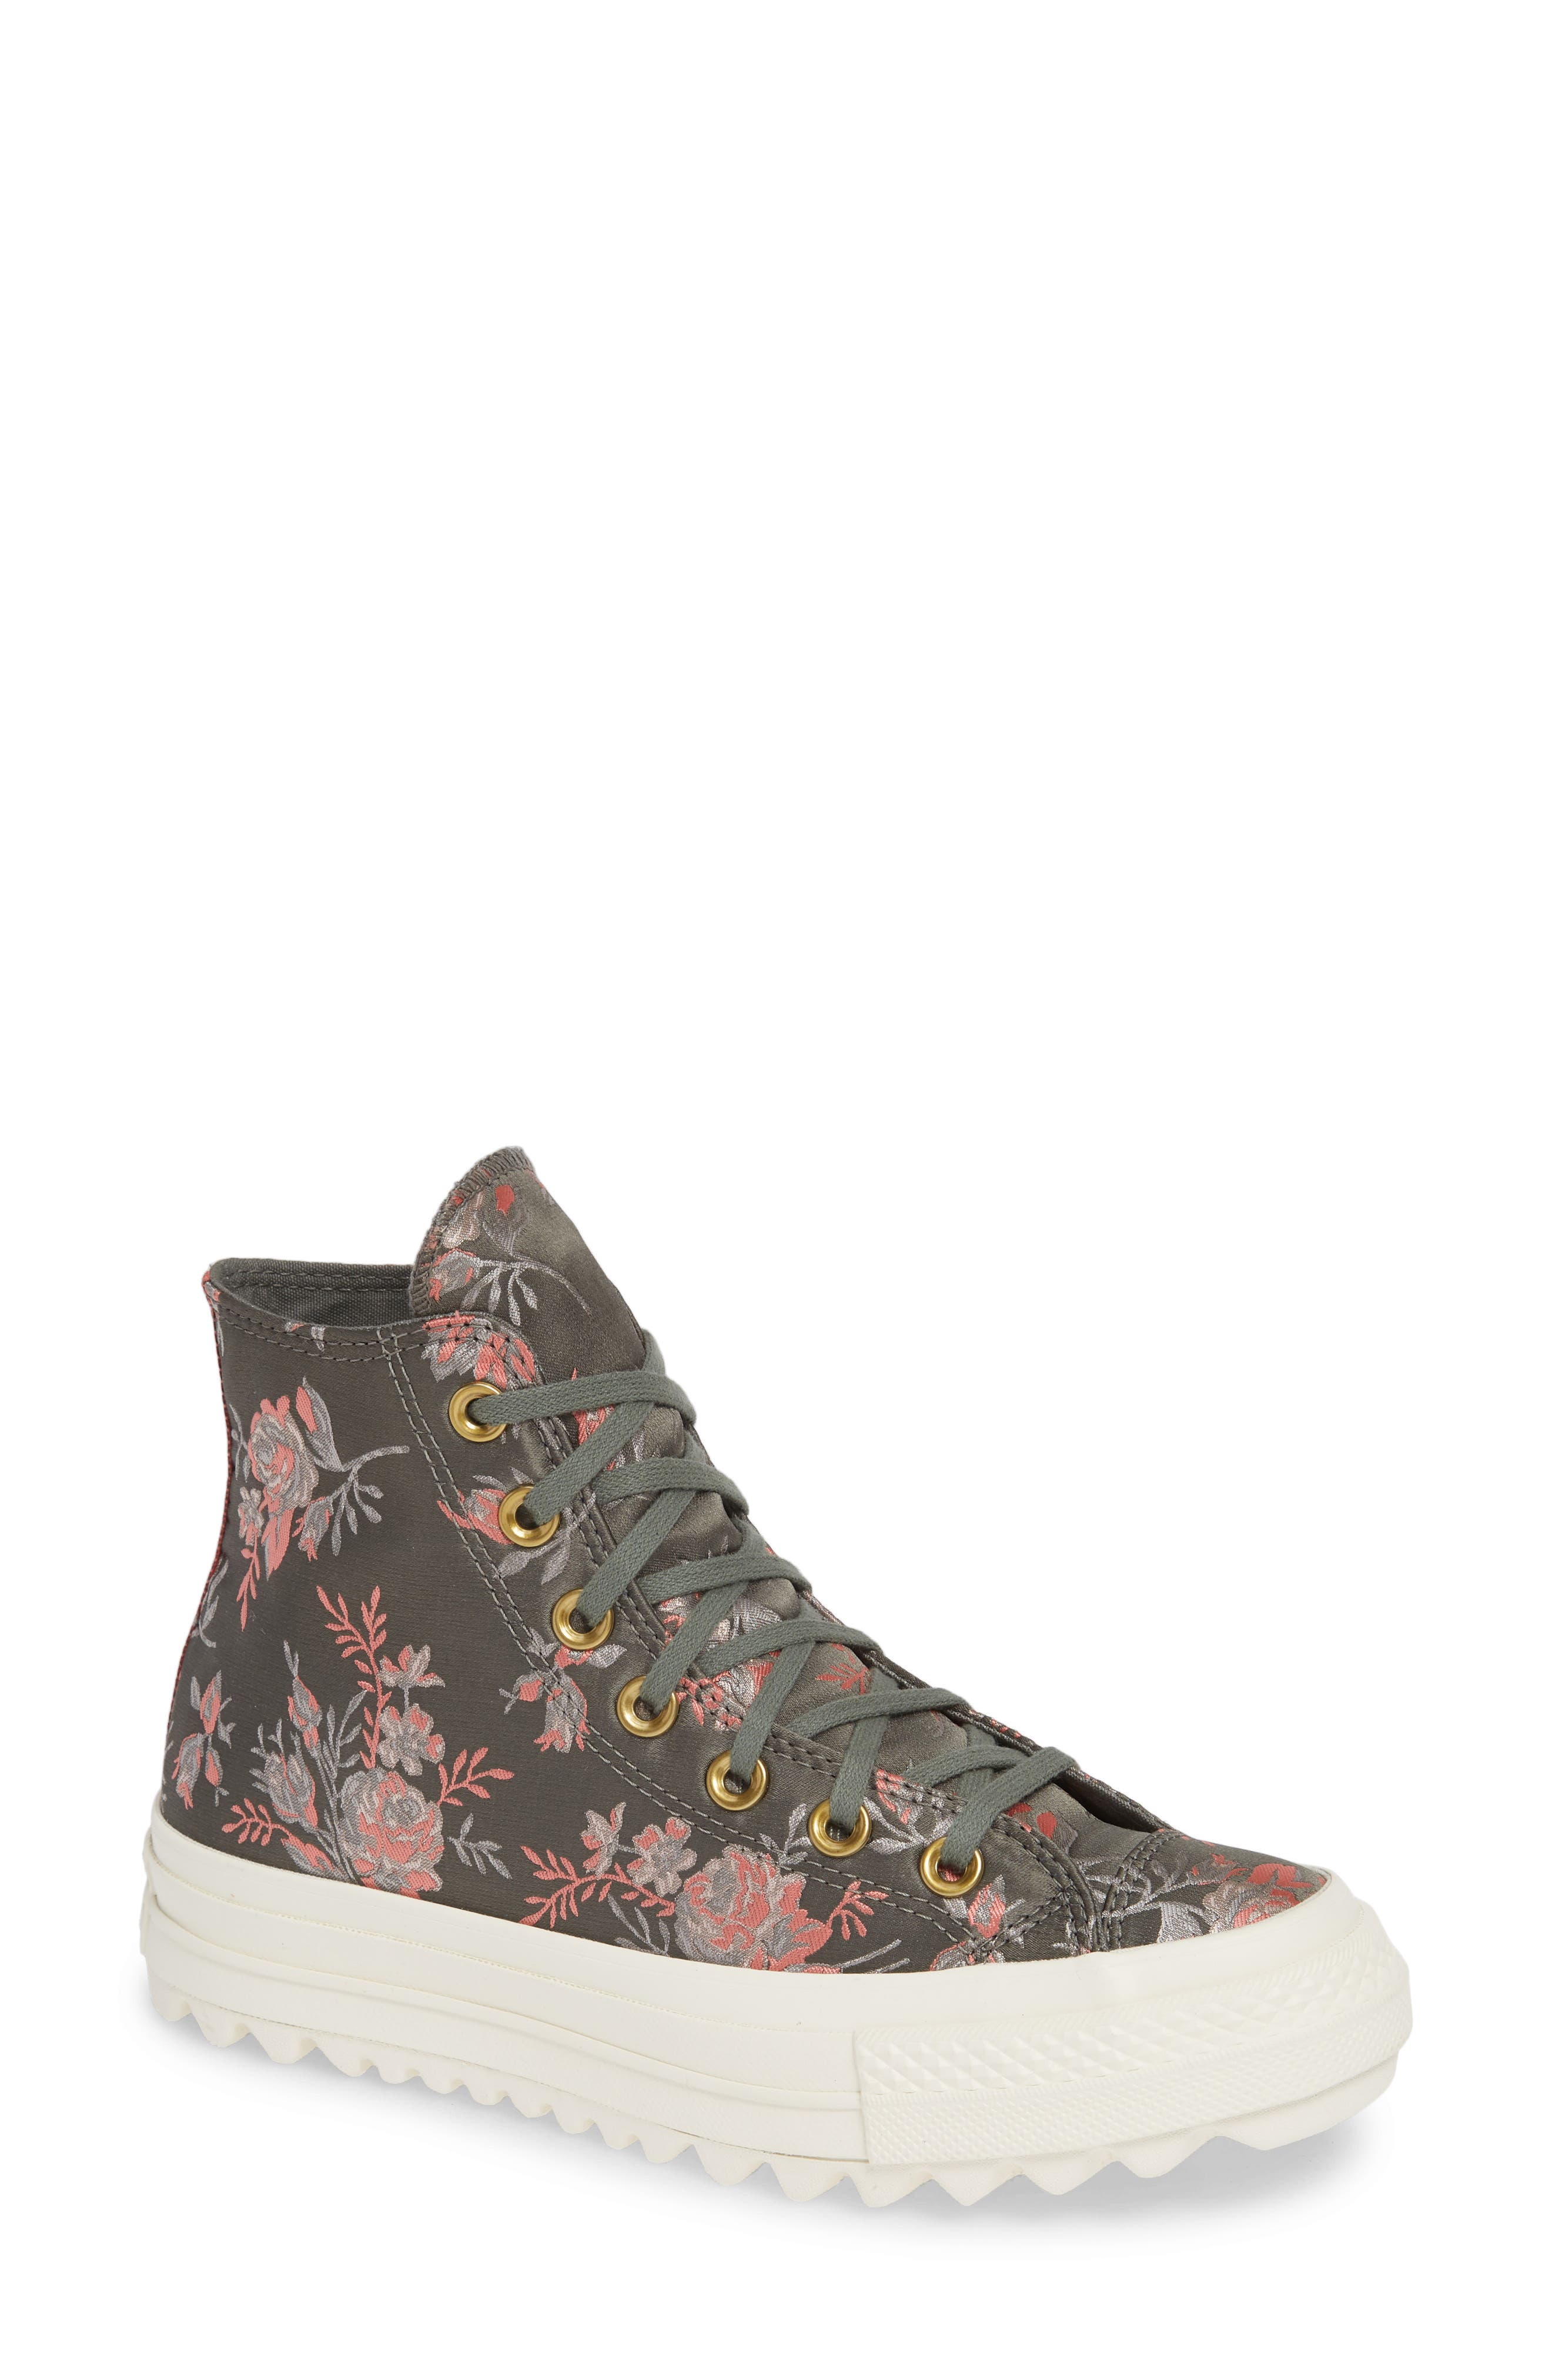 Chuck Taylor<sup>®</sup> All Star<sup>®</sup> Lift Ripple Parkway Floral High Top Sneaker,                             Main thumbnail 1, color,                             020